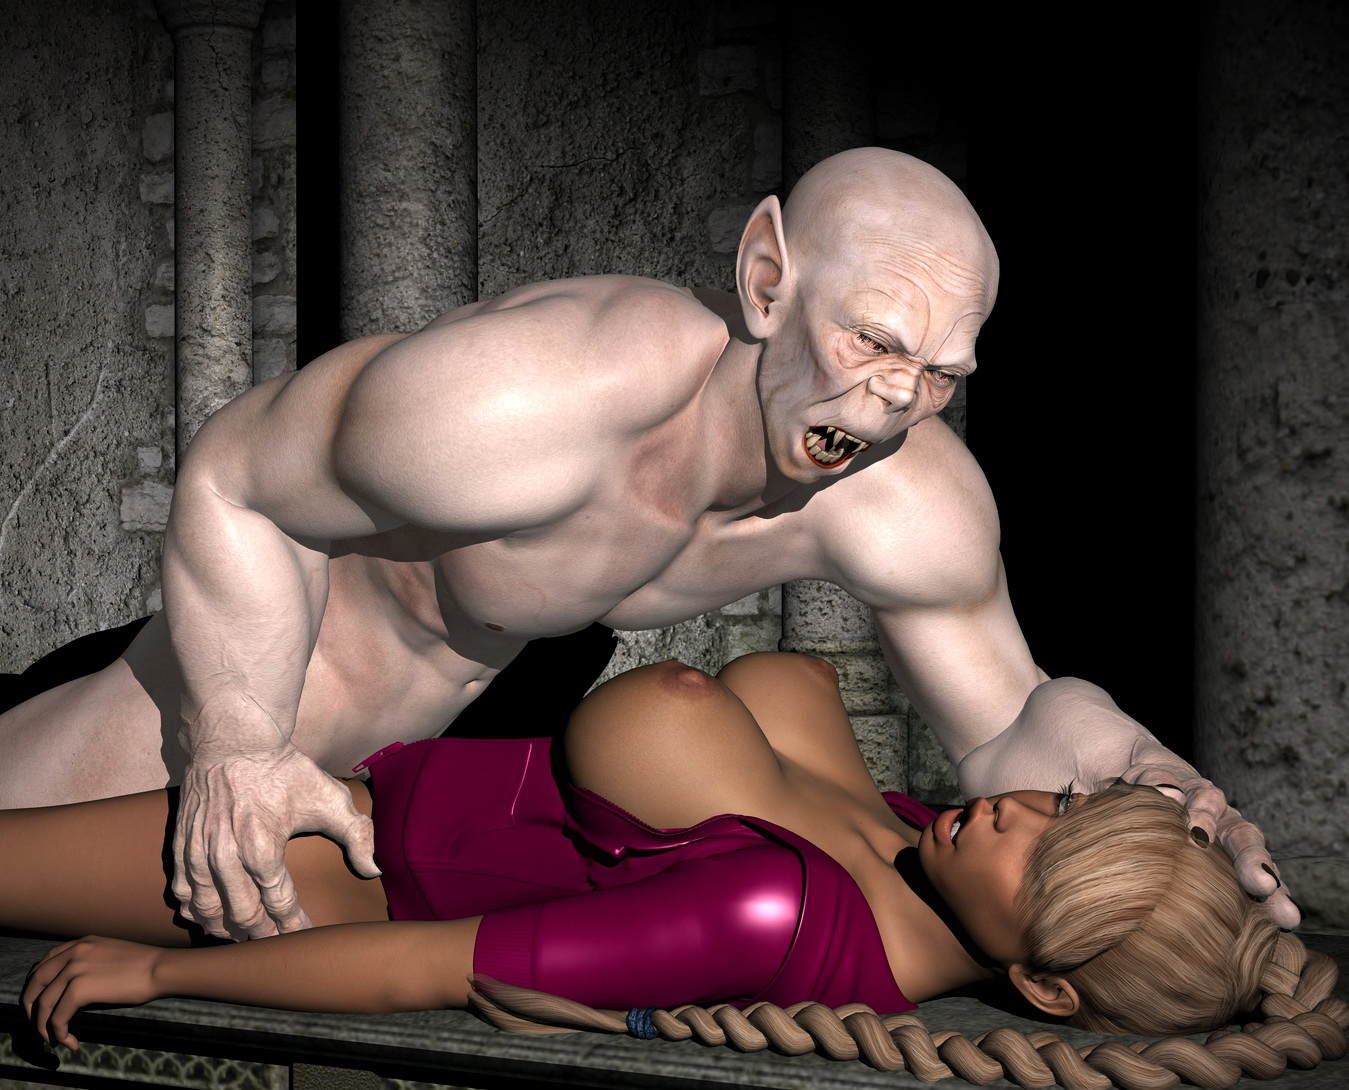 3gp vampire monster porn nsfw download